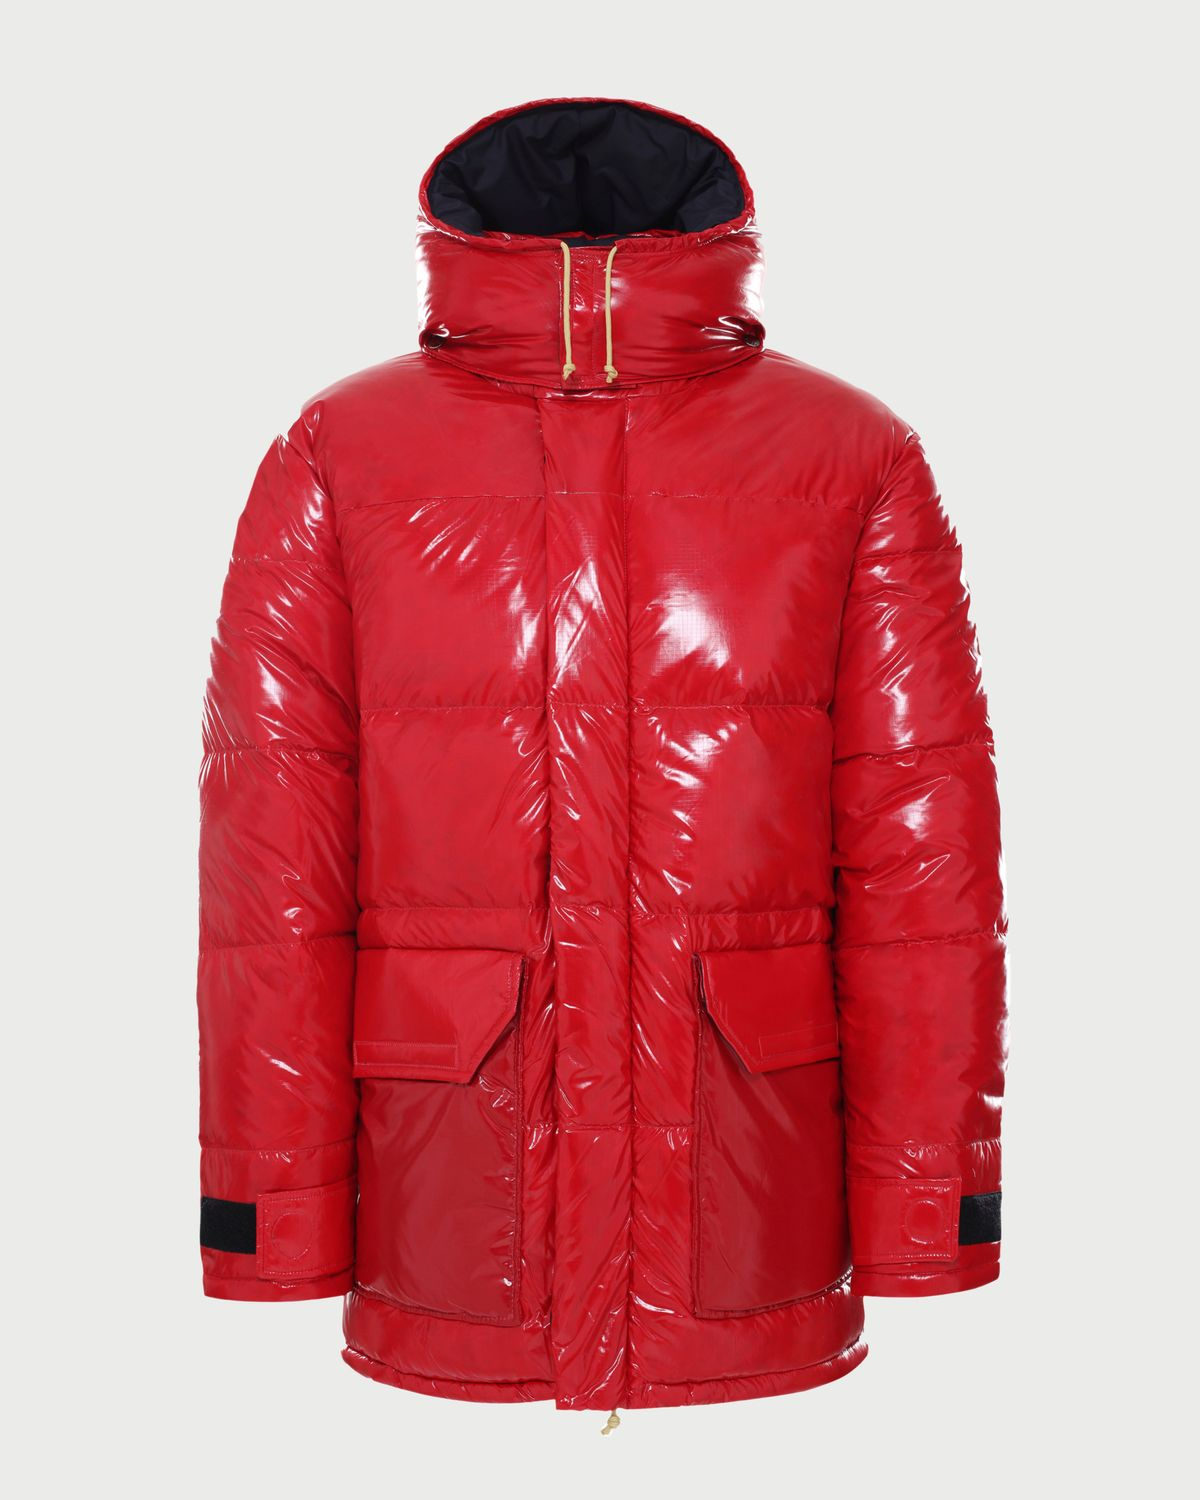 The North Face Brown Label — Brown Label Ripstop Down Parka Red Unisex - Image 1